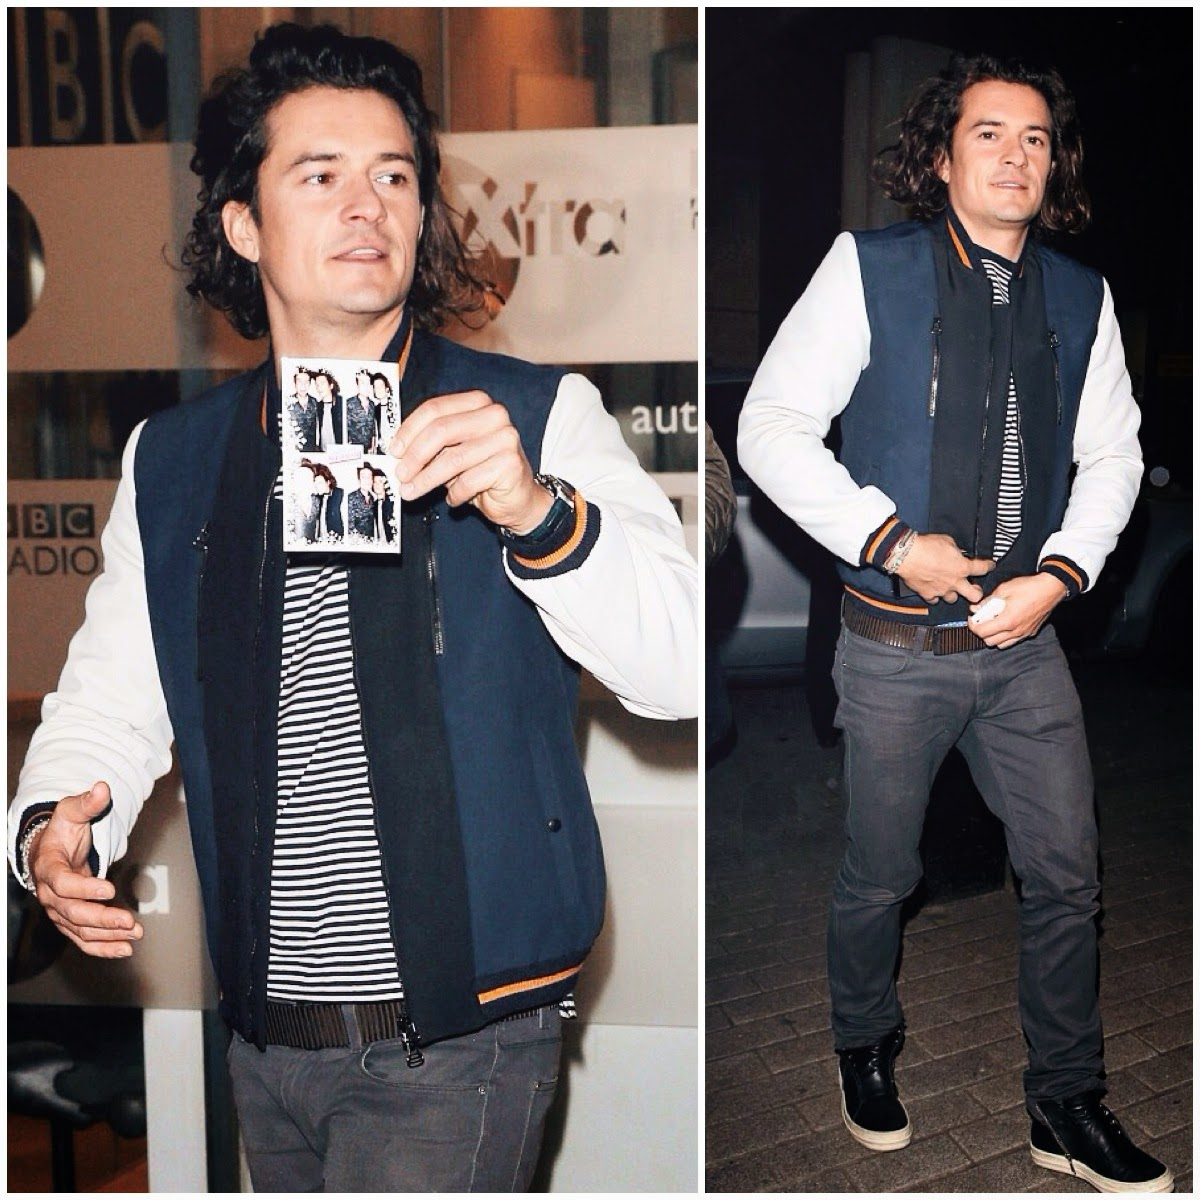 Orlando Bloom wears Lanvin Contrast Panel Varsity Jacket at BBC Radio One Show with Nick Grimshaw 4th December 2014